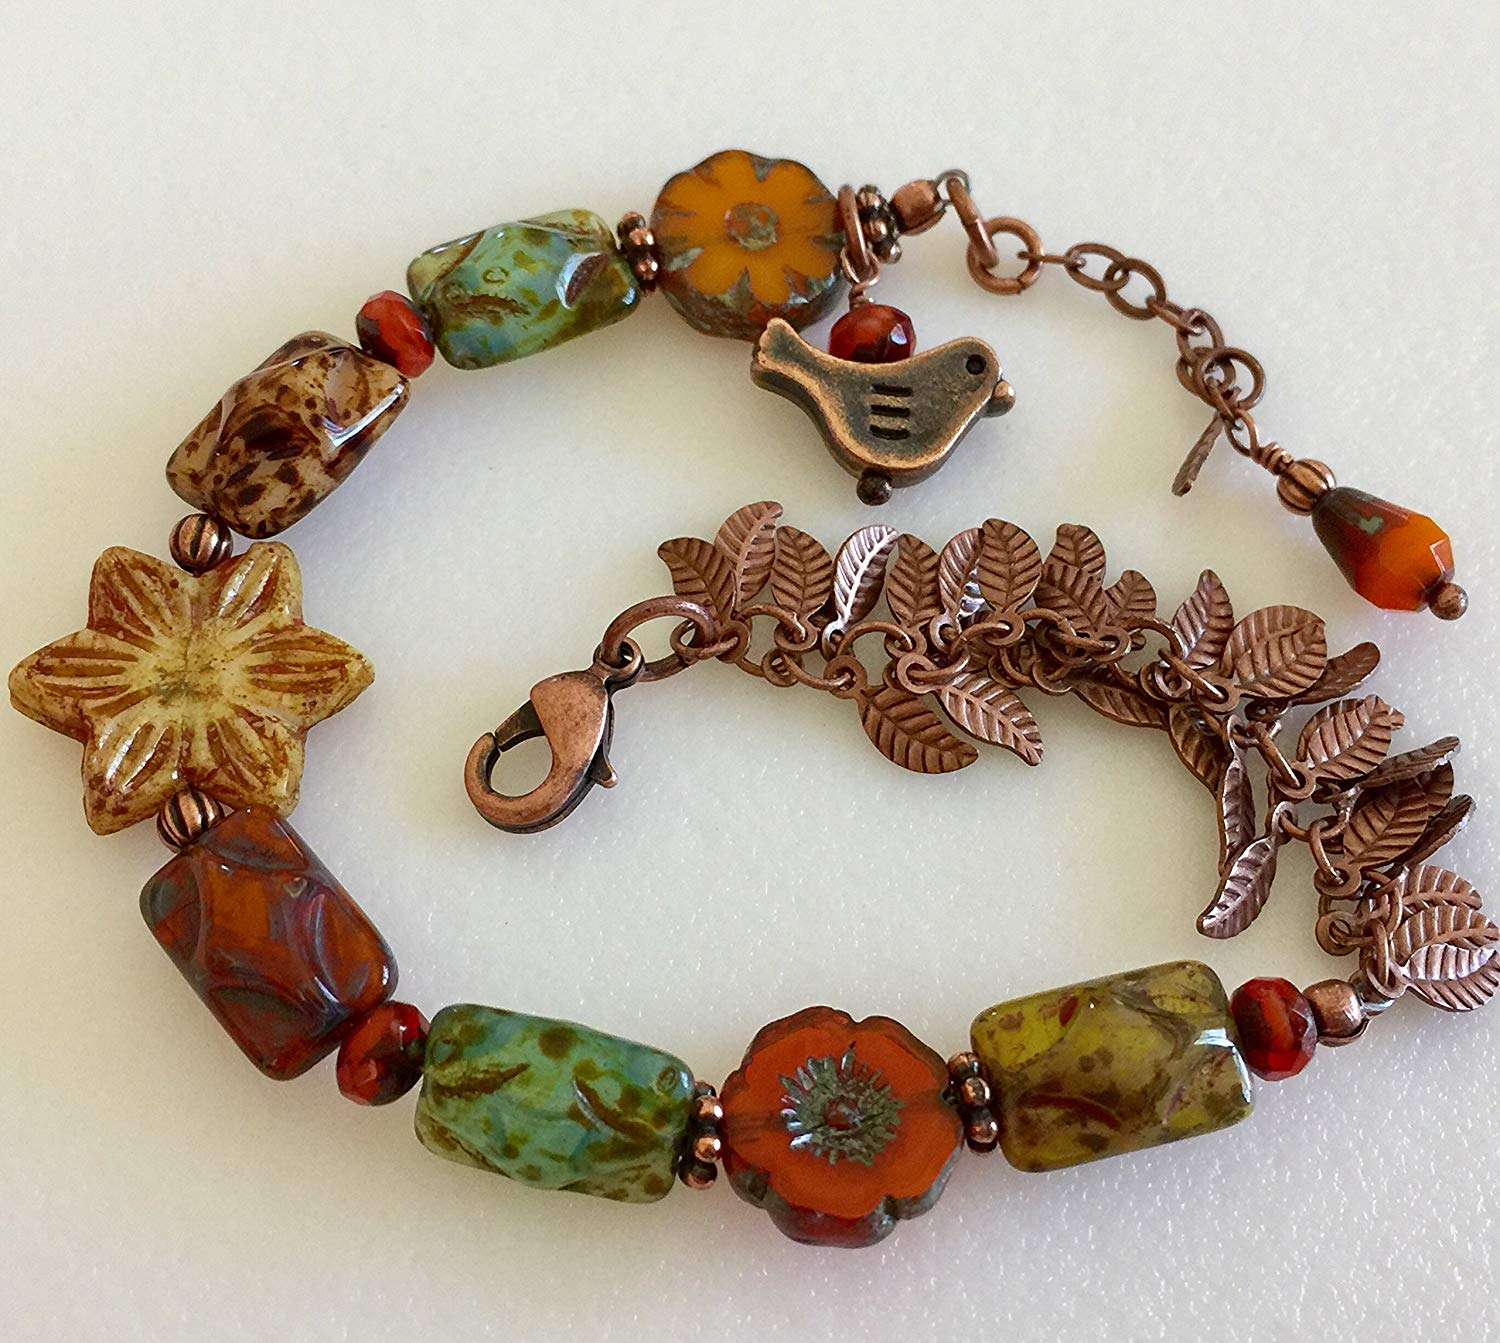 Fall Czech Glass Bracelet, Rustic Beaded Picasso Glass, Premium Czech Beads, Flowers, Leaves, Burnt Orange, Rust, Greens, Copper Accents.